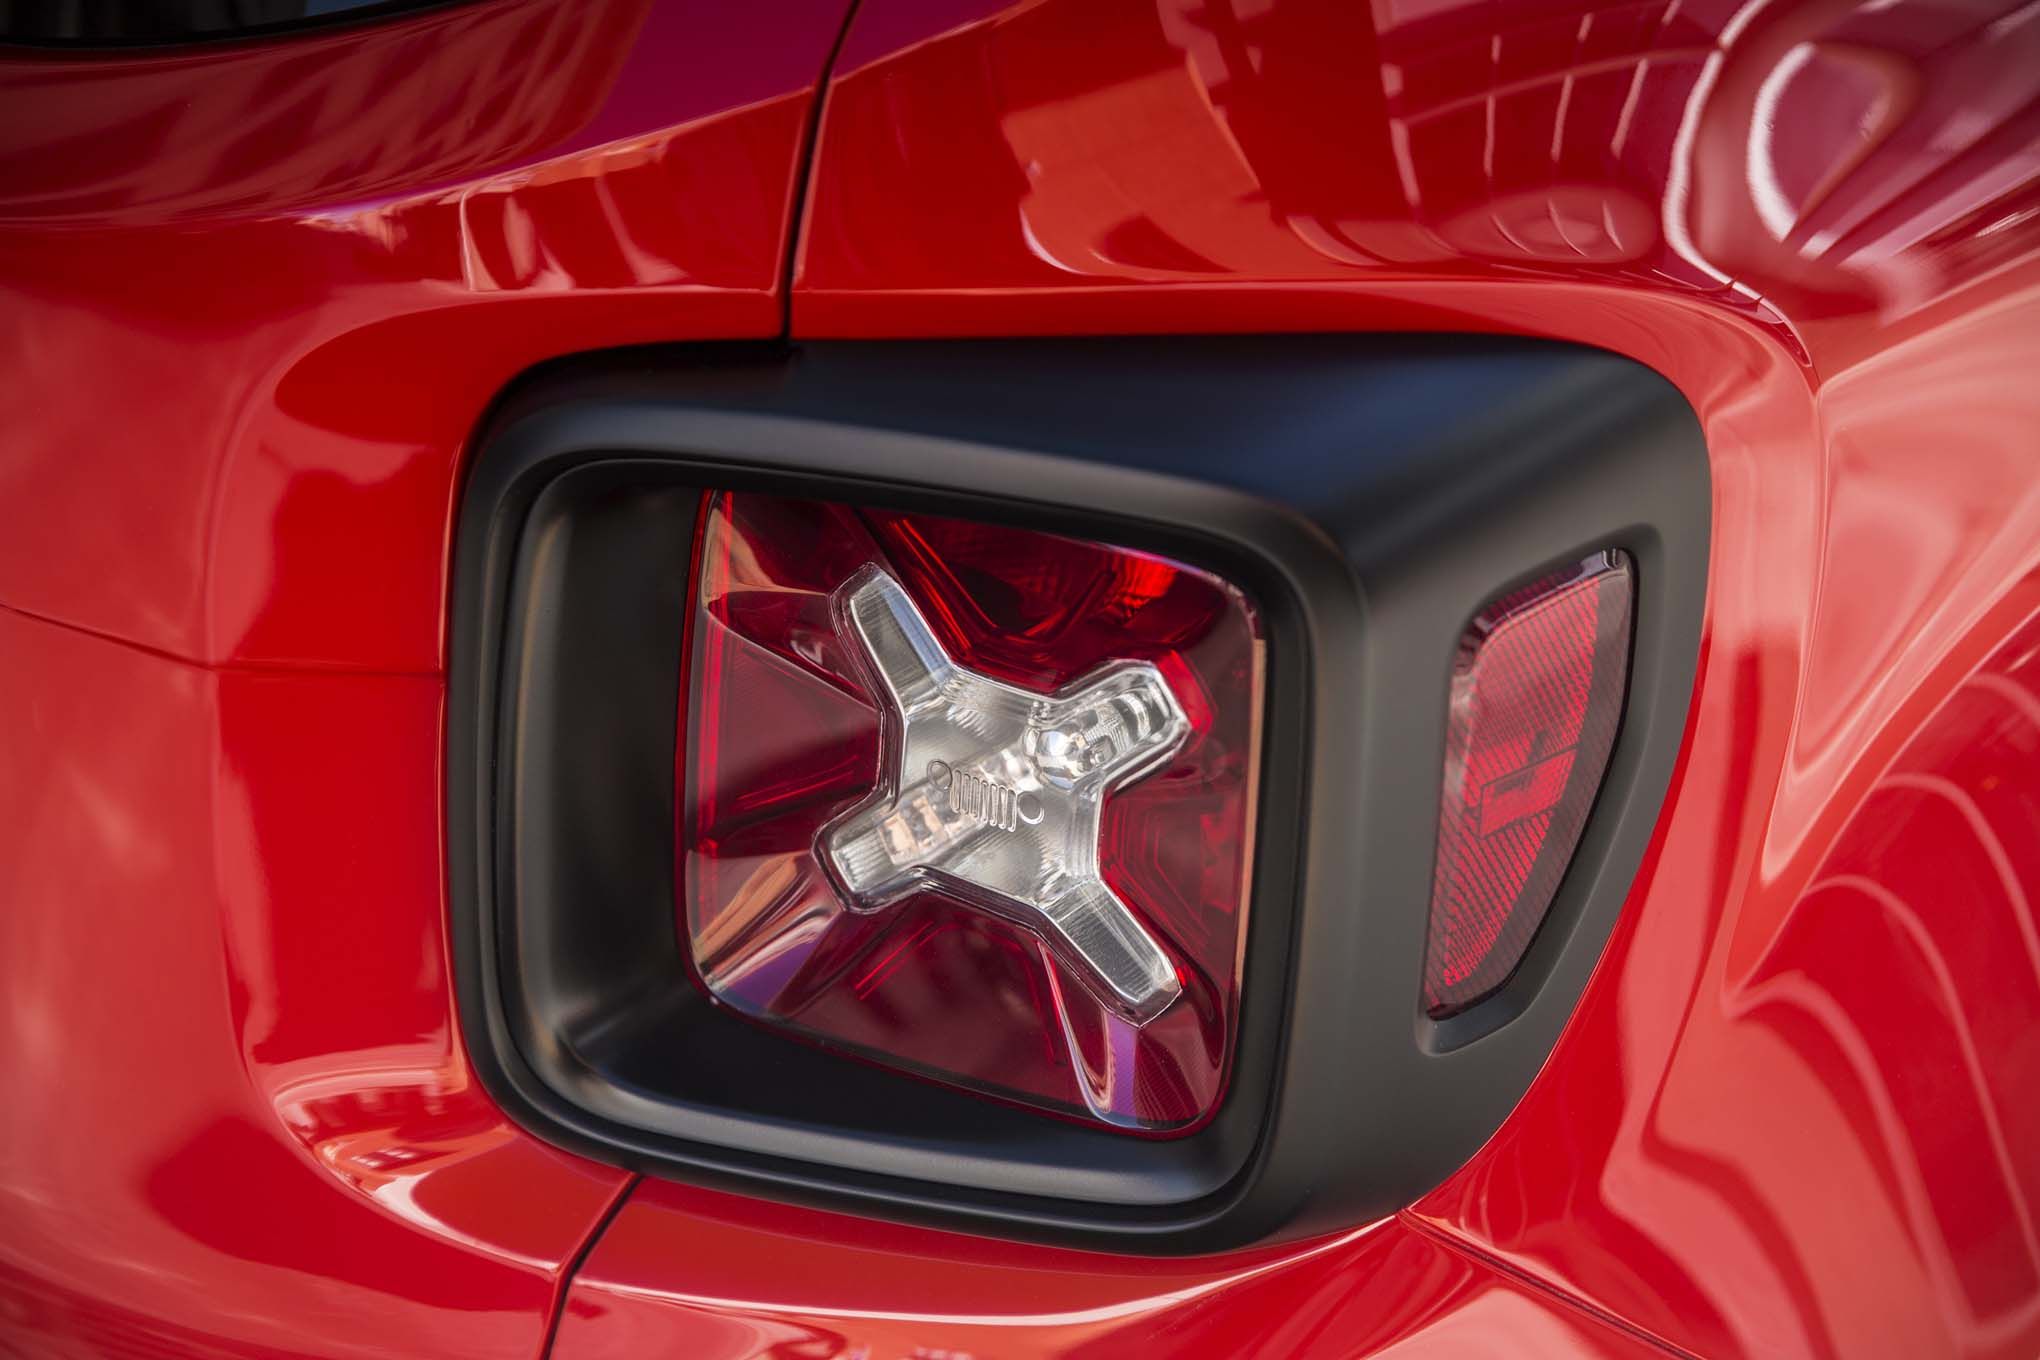 2015 Jeep Renegade Latitude taillight